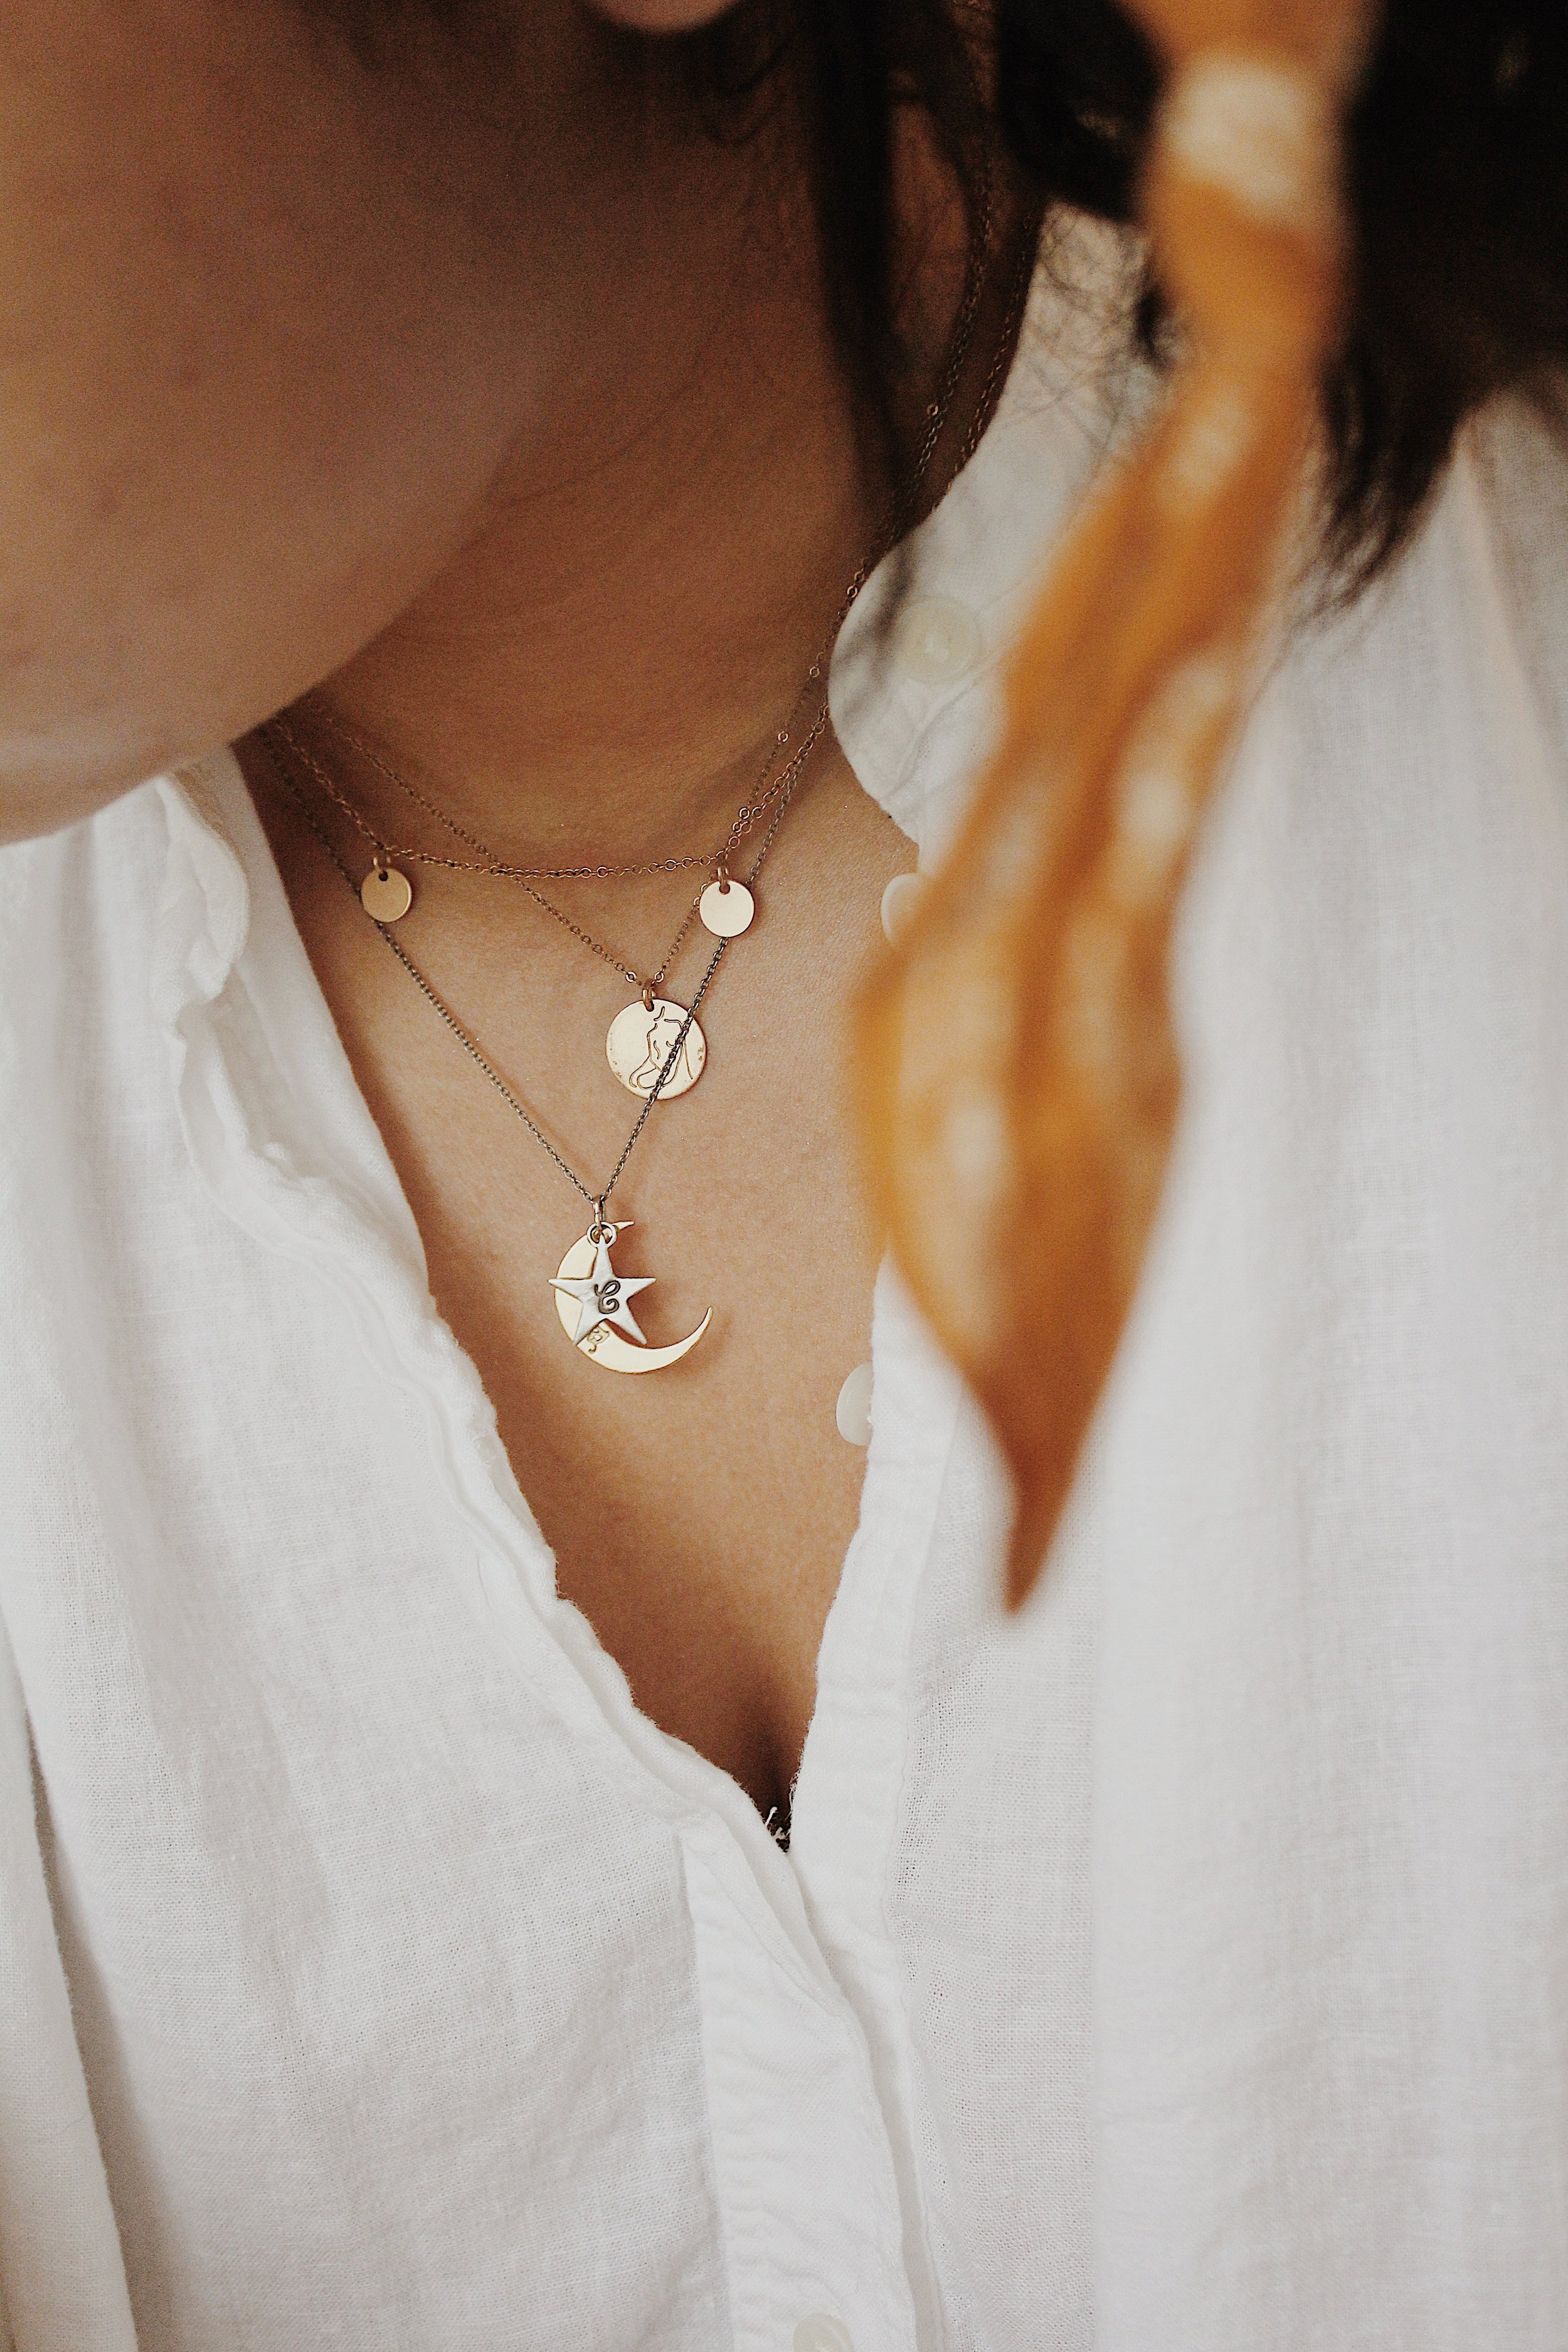 From top to bottom: Tumble Five Dot Collar (unavailable but similar option  here ) // GLDN  Poise from La Femme Collection Necklace  // Catbird  You are my Moon and Stars Necklace